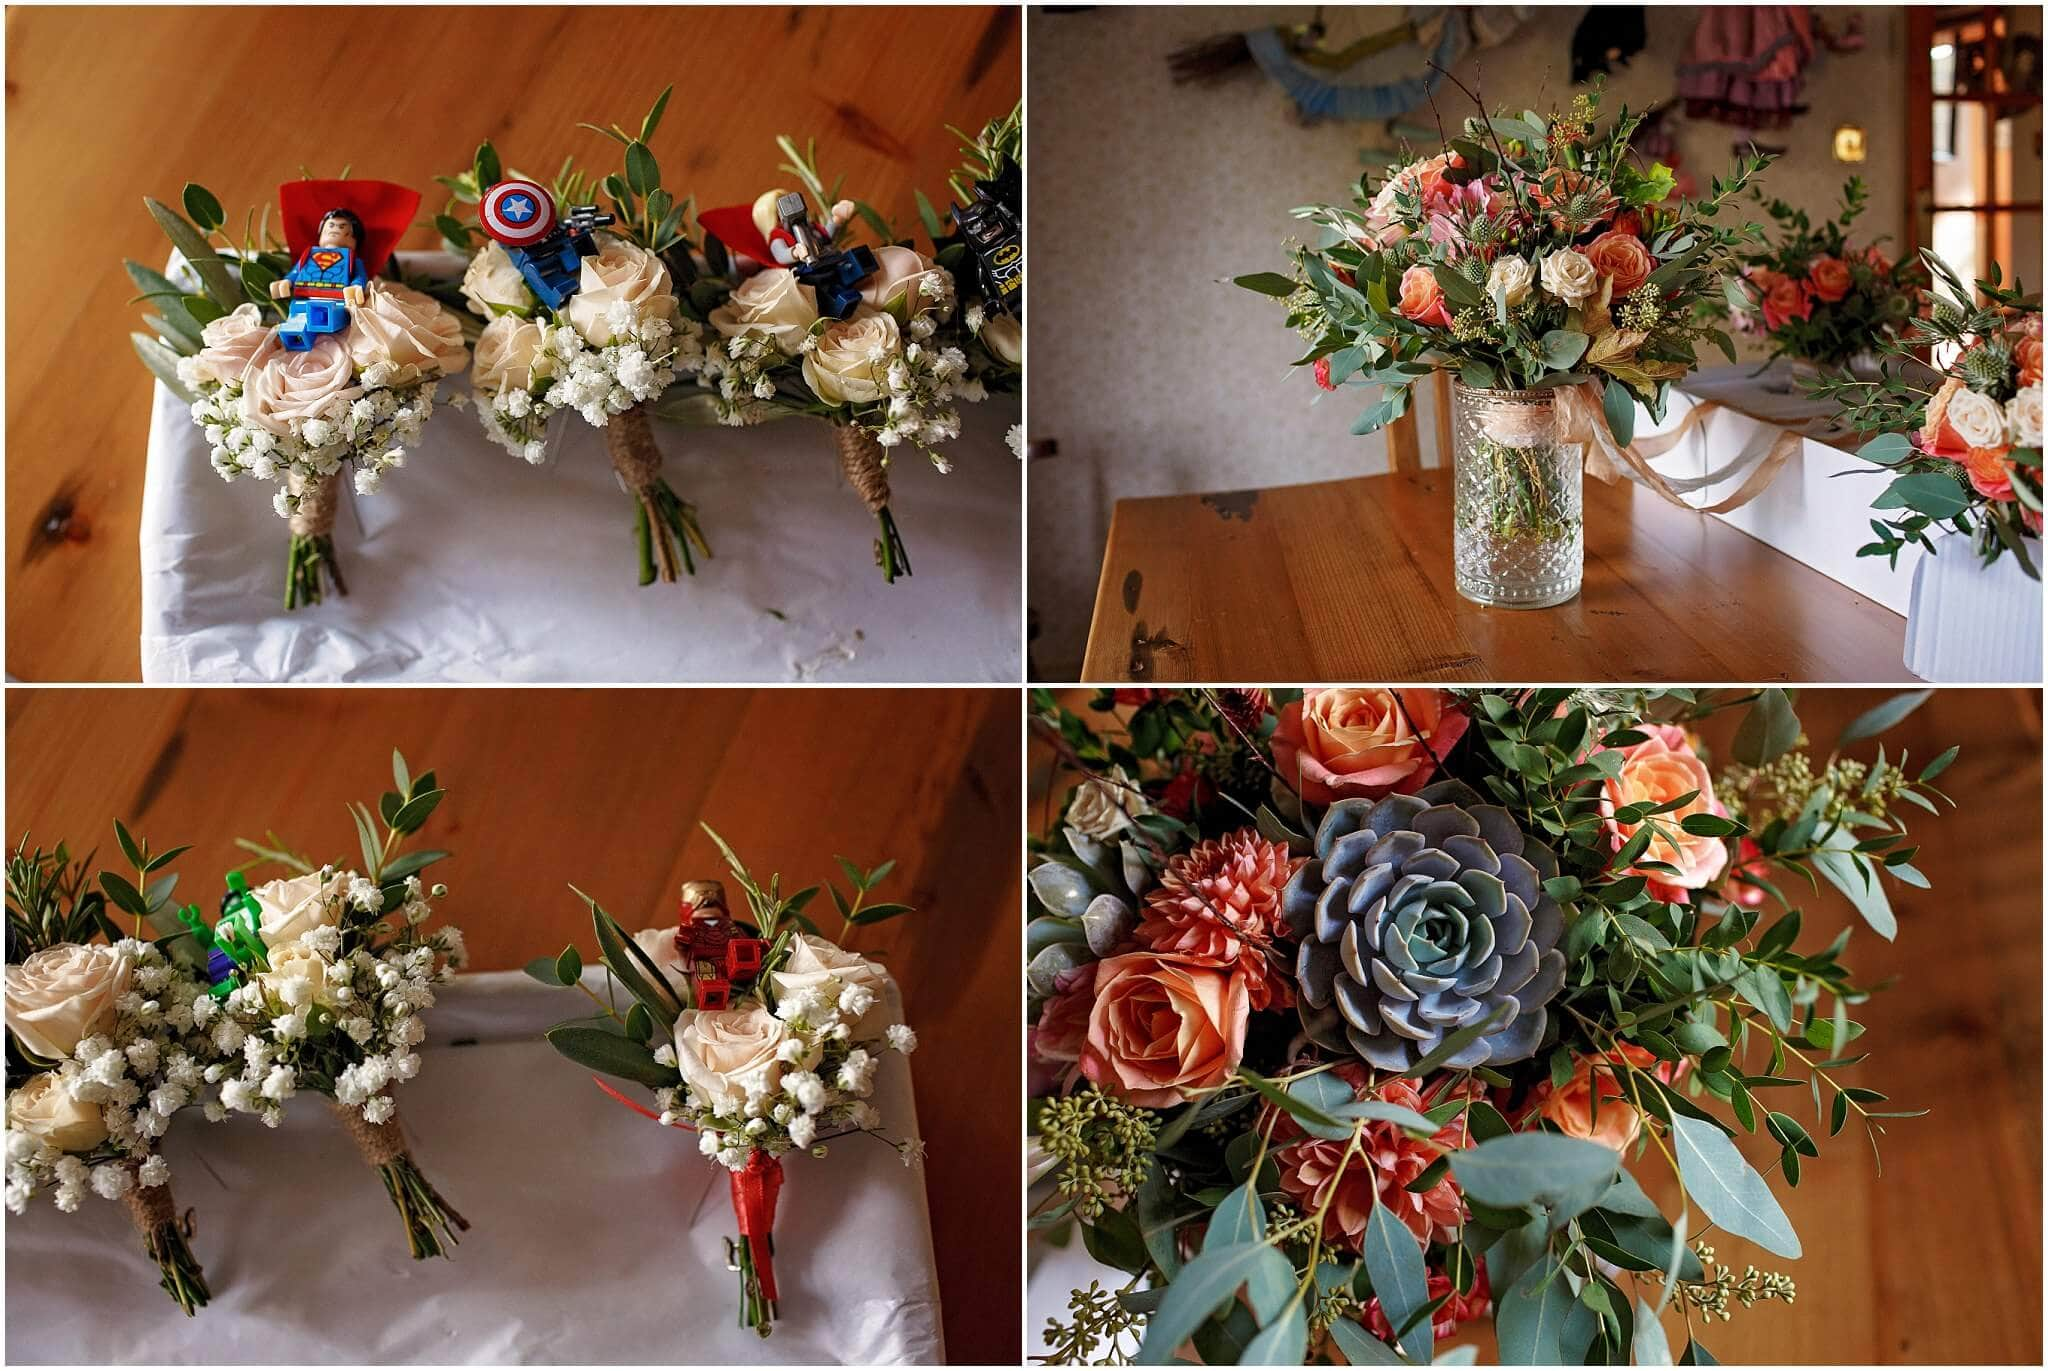 Wedding flowers by Suzanne Randall